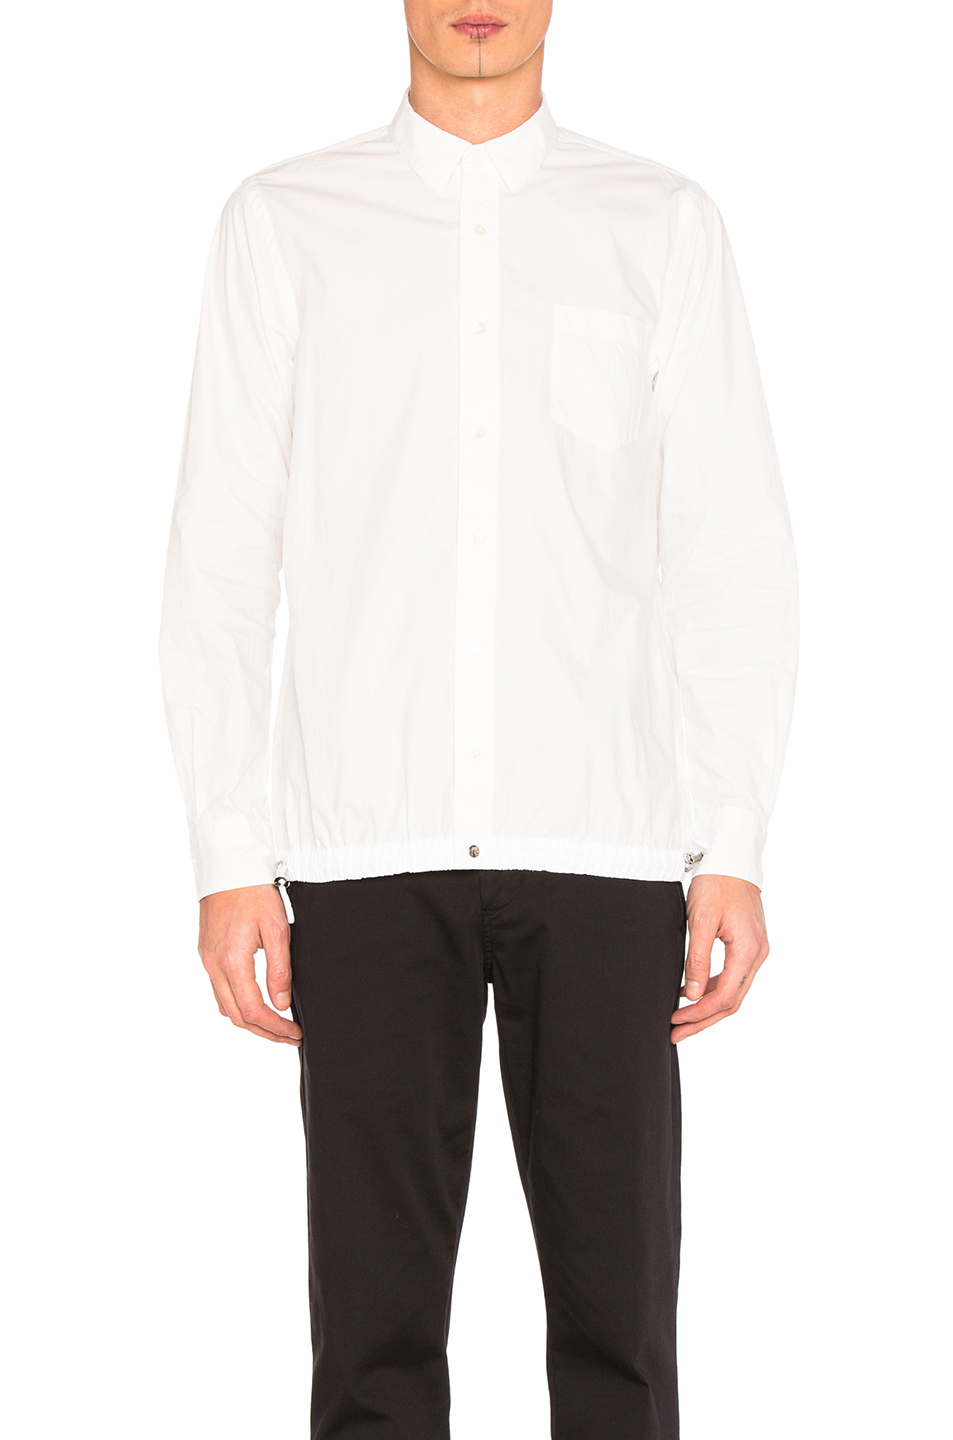 Sacai Typewriter Pattern Shirt in White